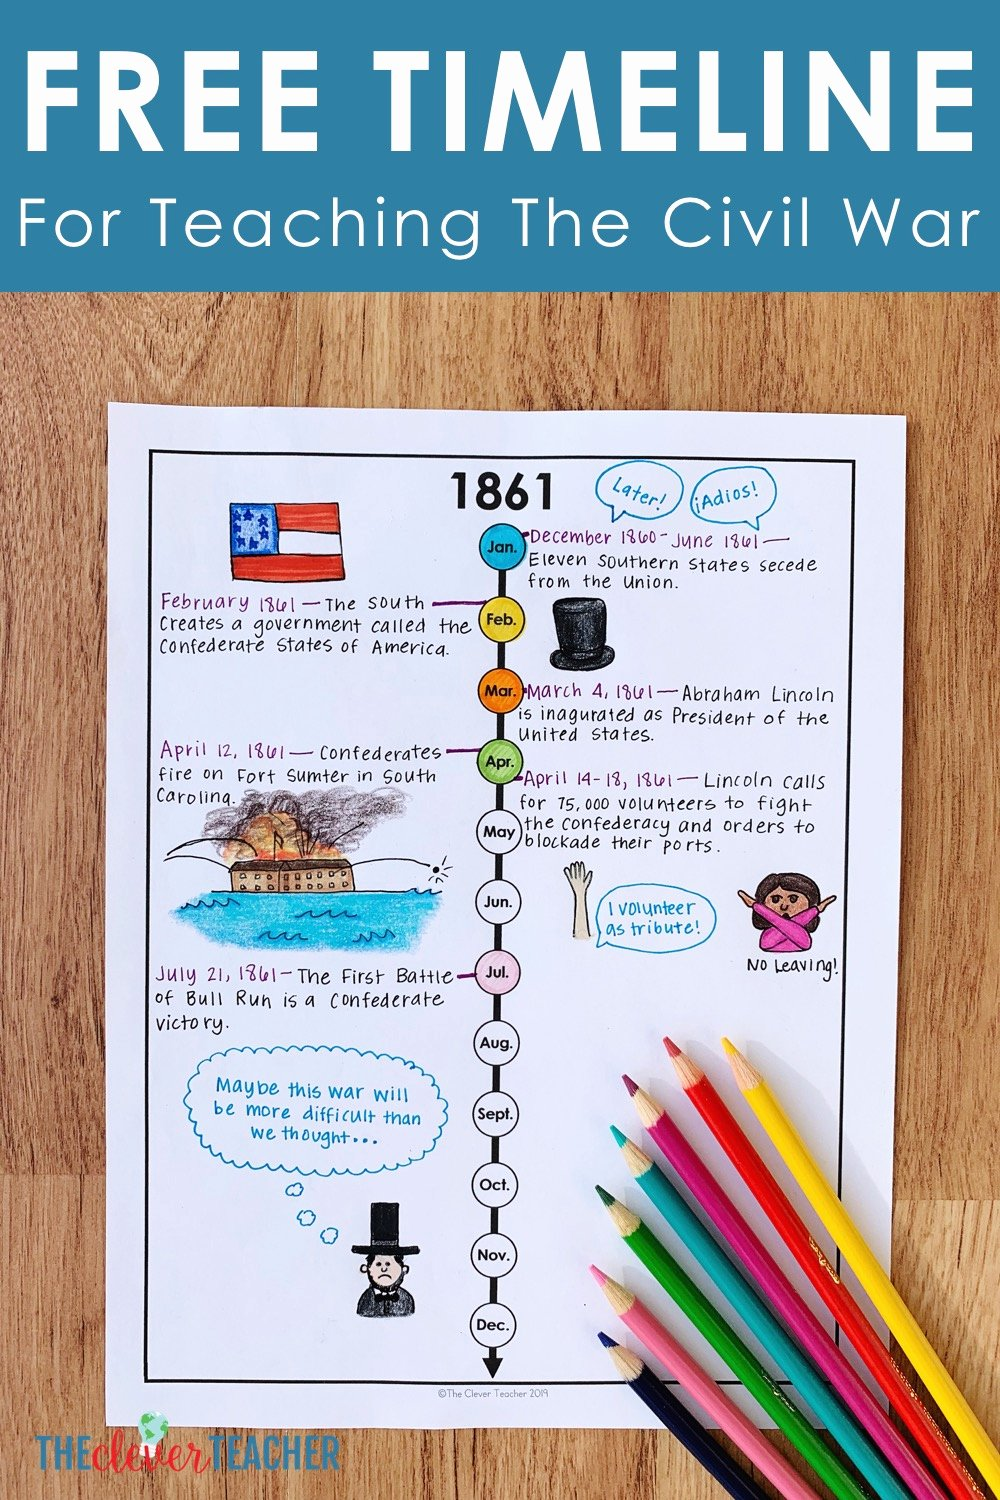 Civil War Timeline Worksheet Luxury How to Teach the Civil War with Timelines Free Worksheet